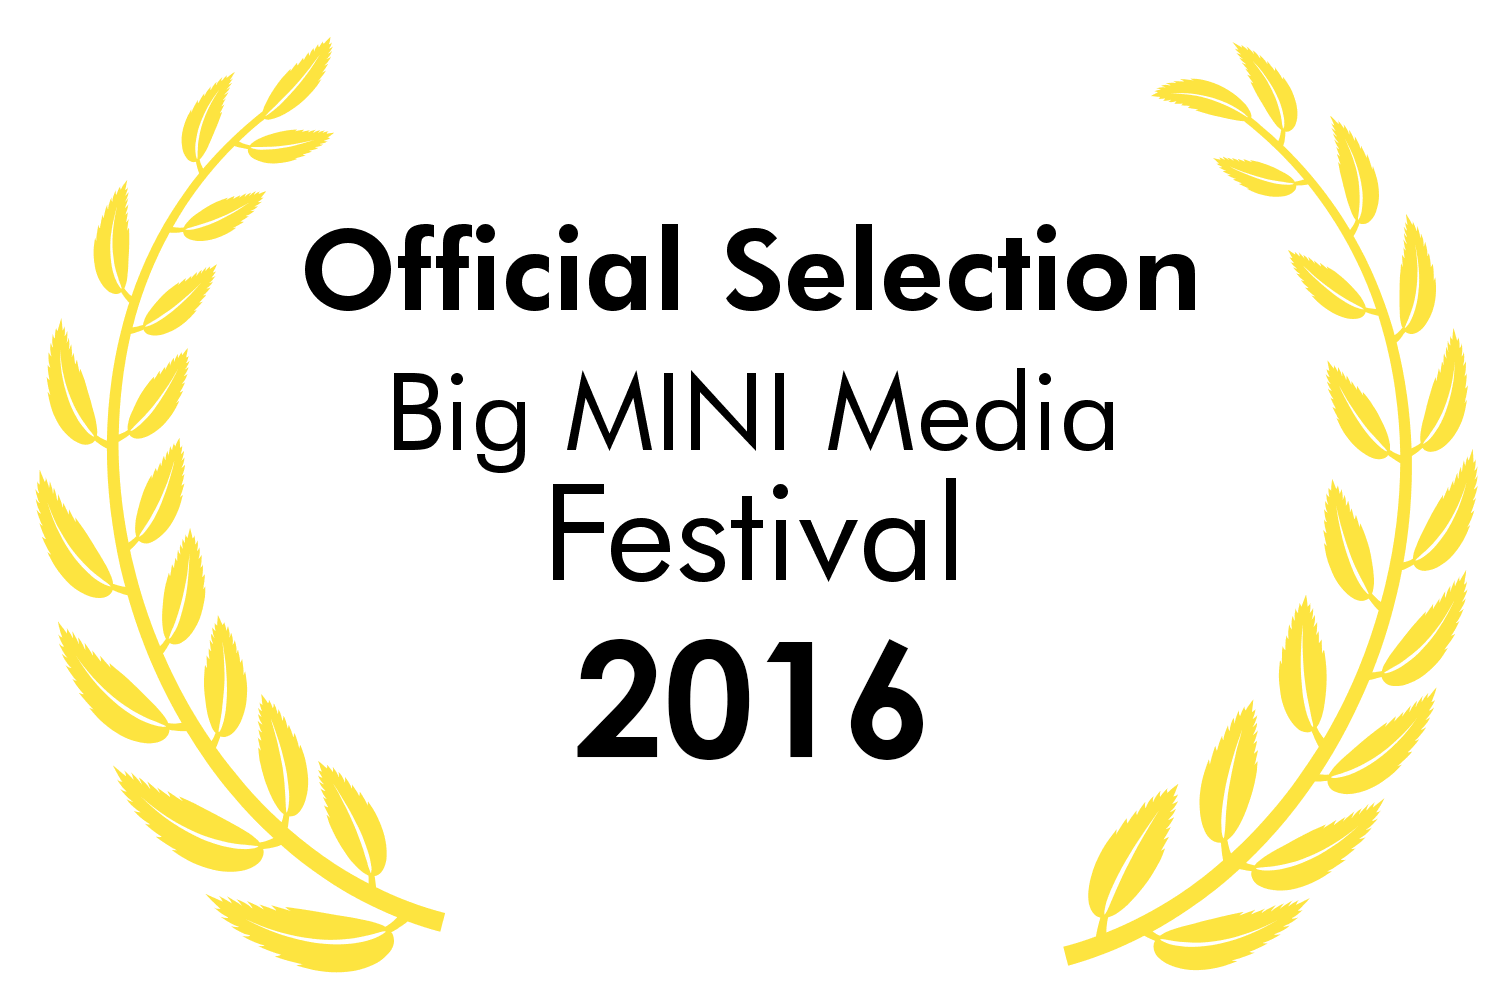 official selection big mini media festival mindconsole 2016